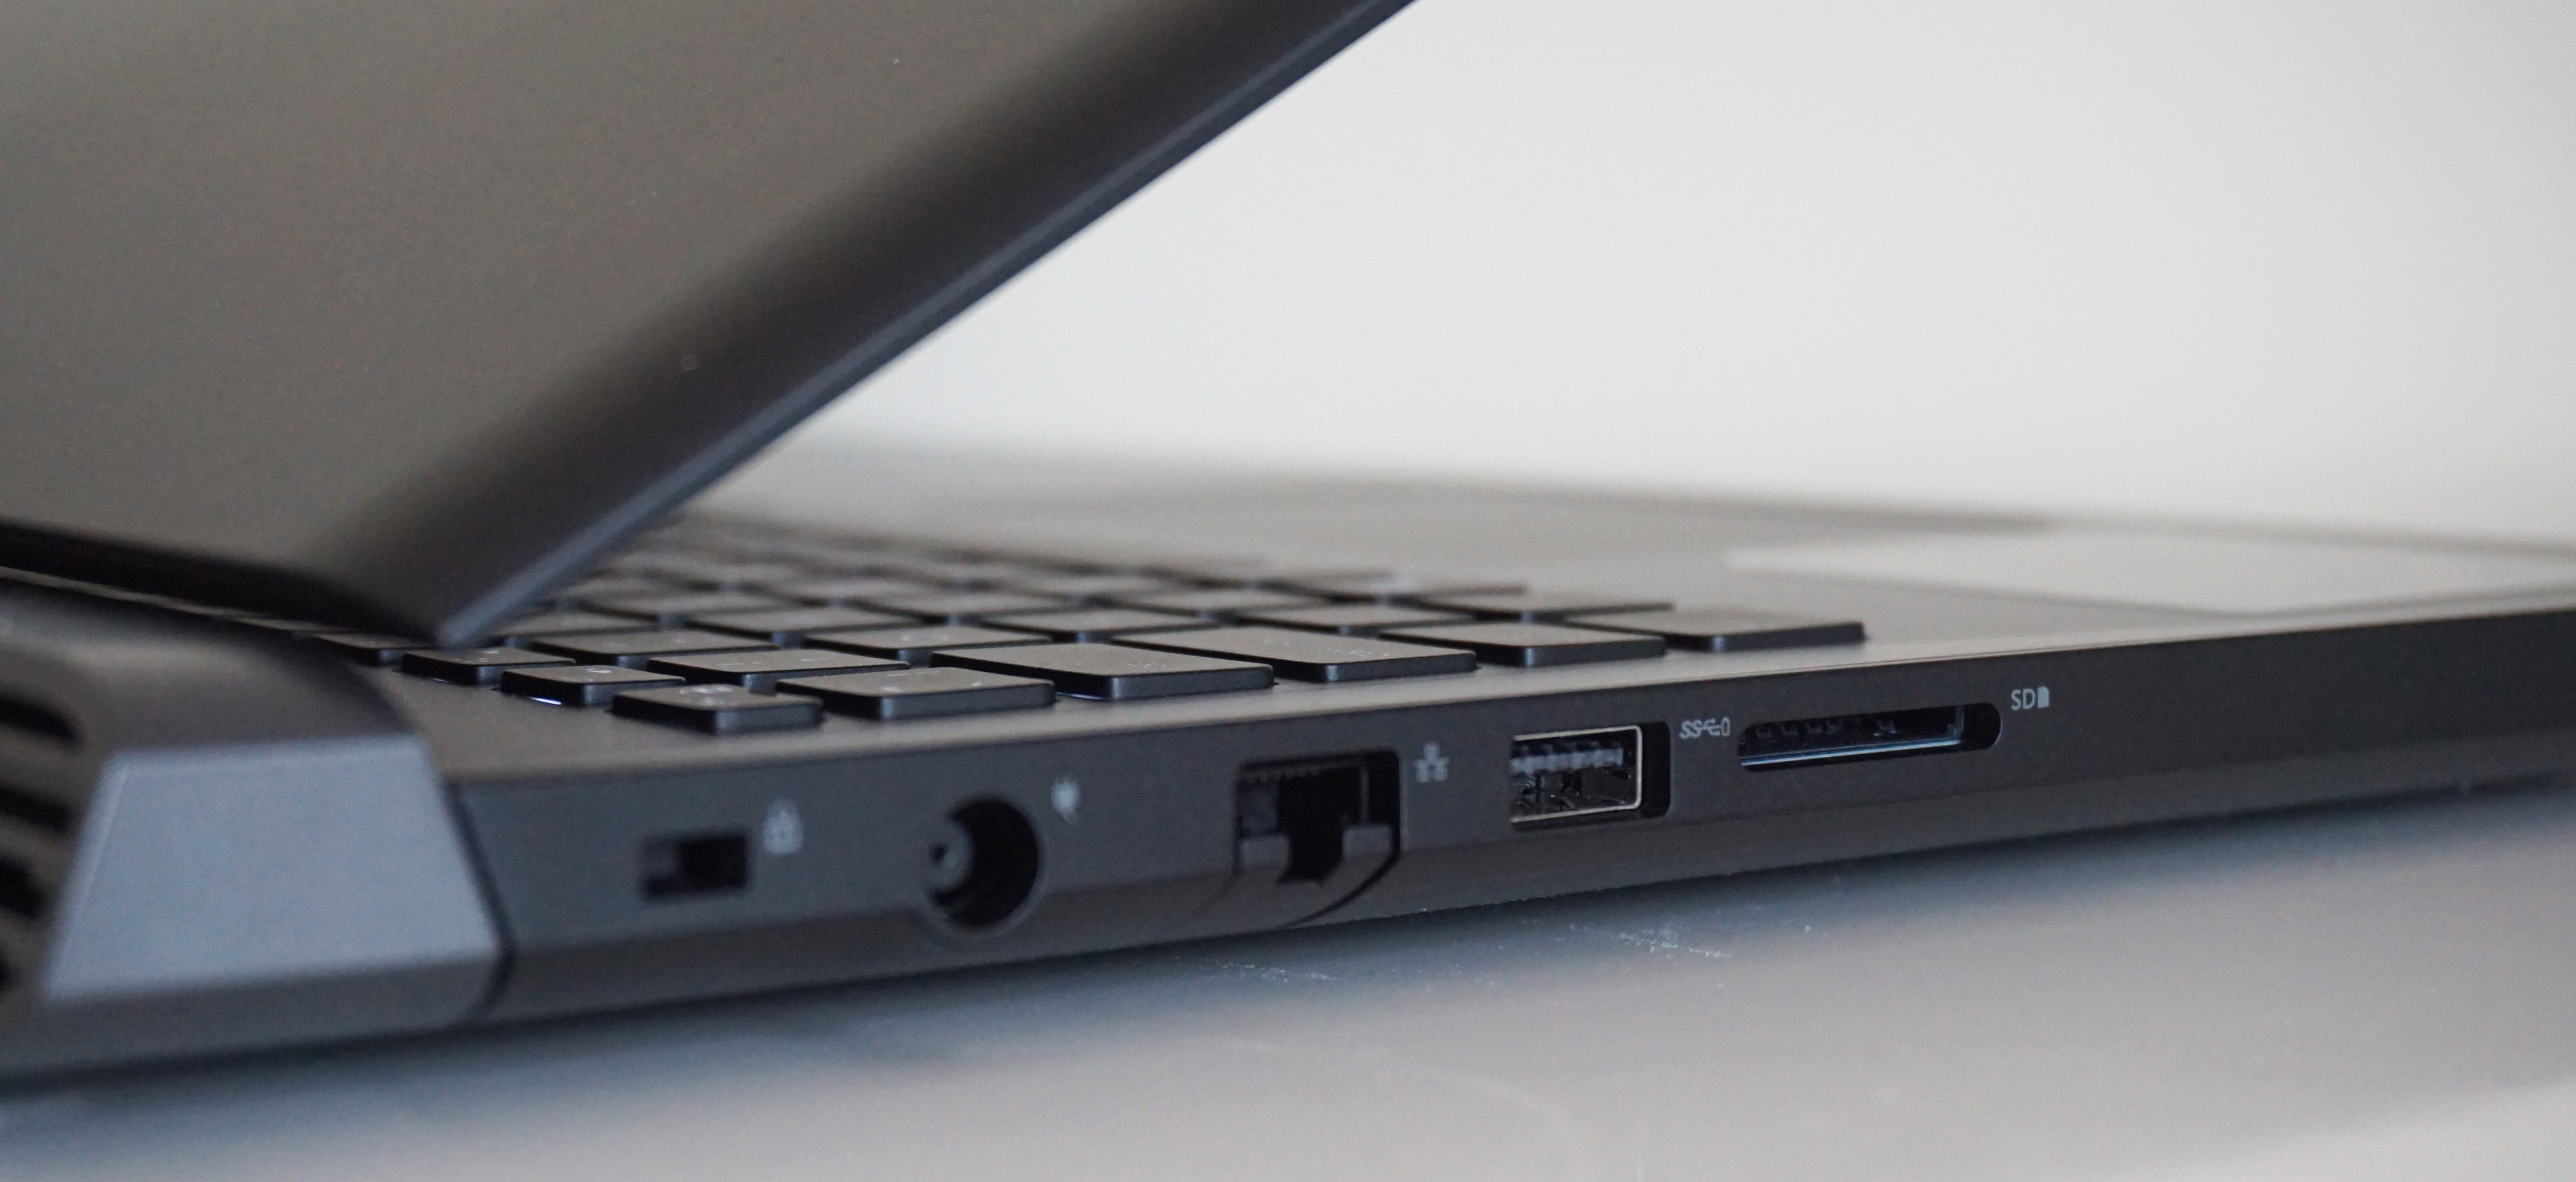 Dell Inspiron G5 15 review | Rock Paper Shotgun